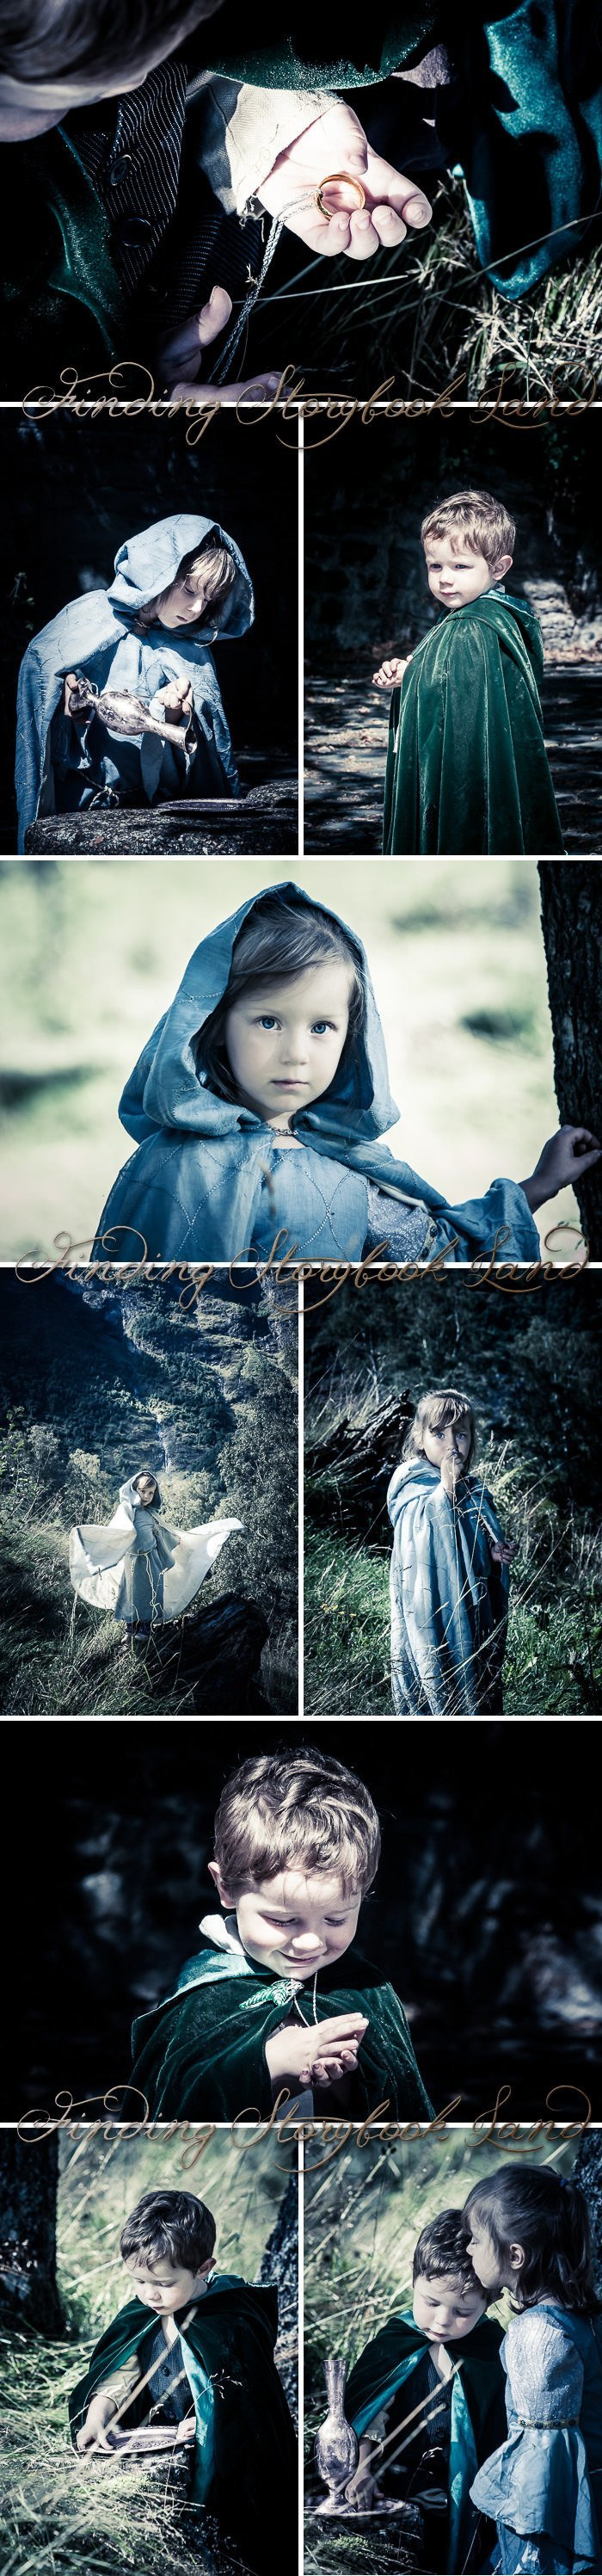 A basic guide on how to do a Hobbit themed children's photo shoot with costume, prop, and location ideas and tutorials